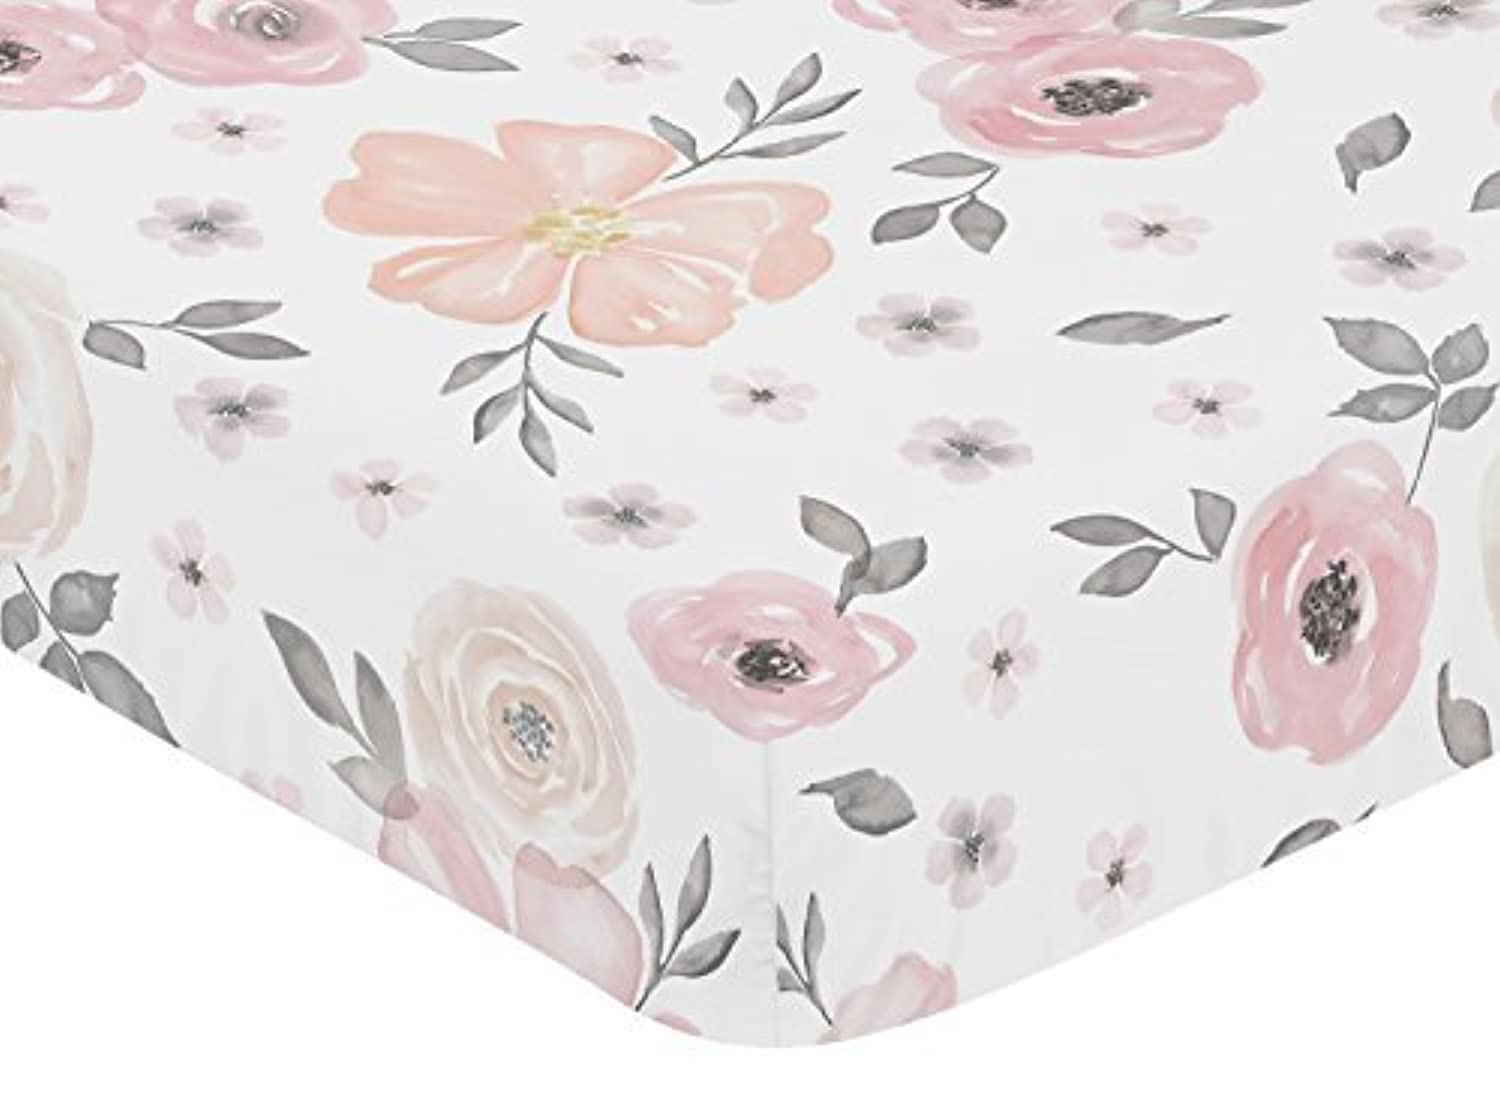 Sweet Jojo Designs Blush Pink Grey and White Baby or Toddler Fitted Crib Sheet for Watercolor Floral Collection by [並行輸入品]